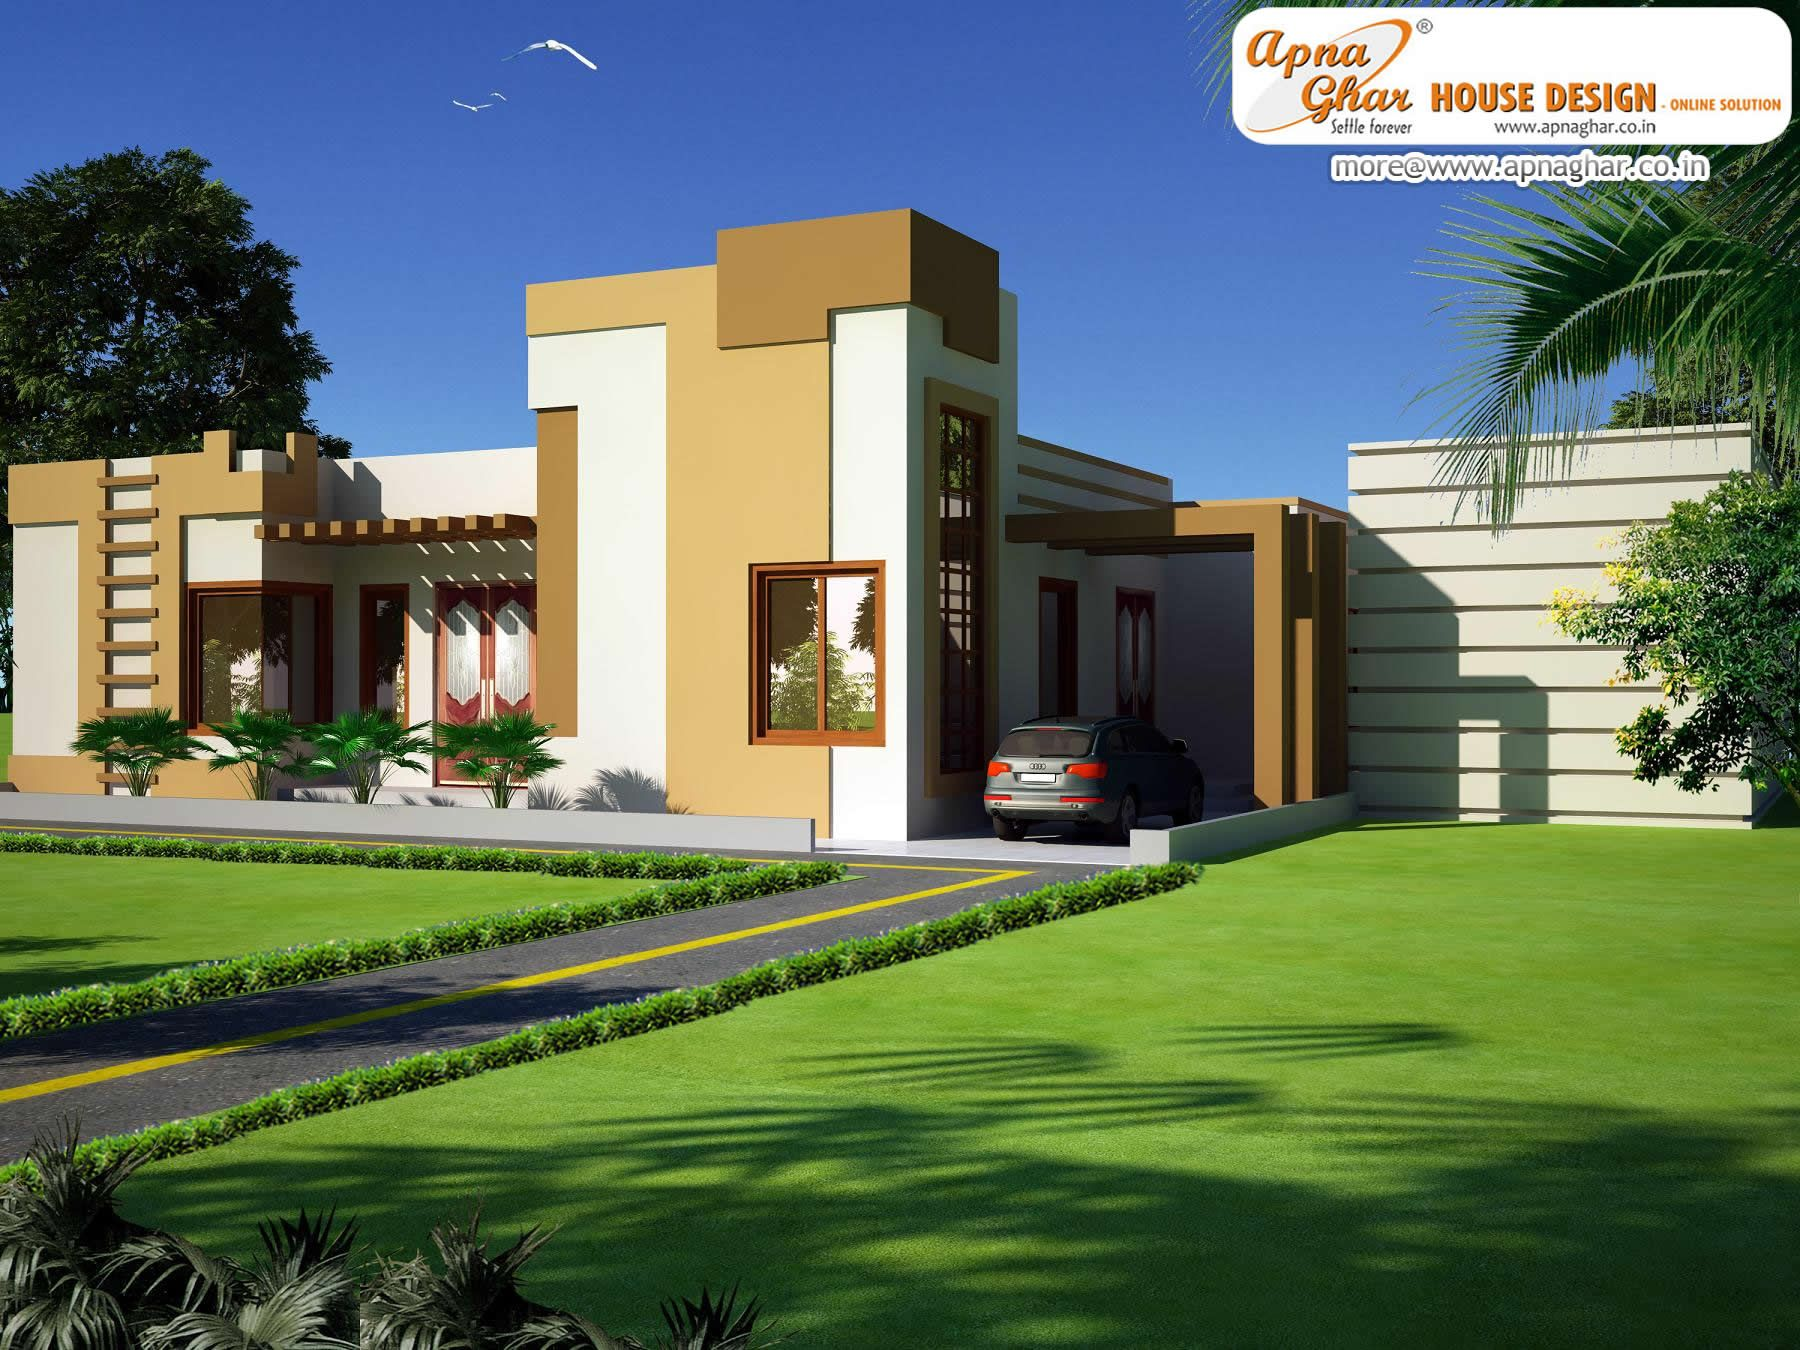 4 bedroom simplex 1 floor house design area 255m2 for Balsam house